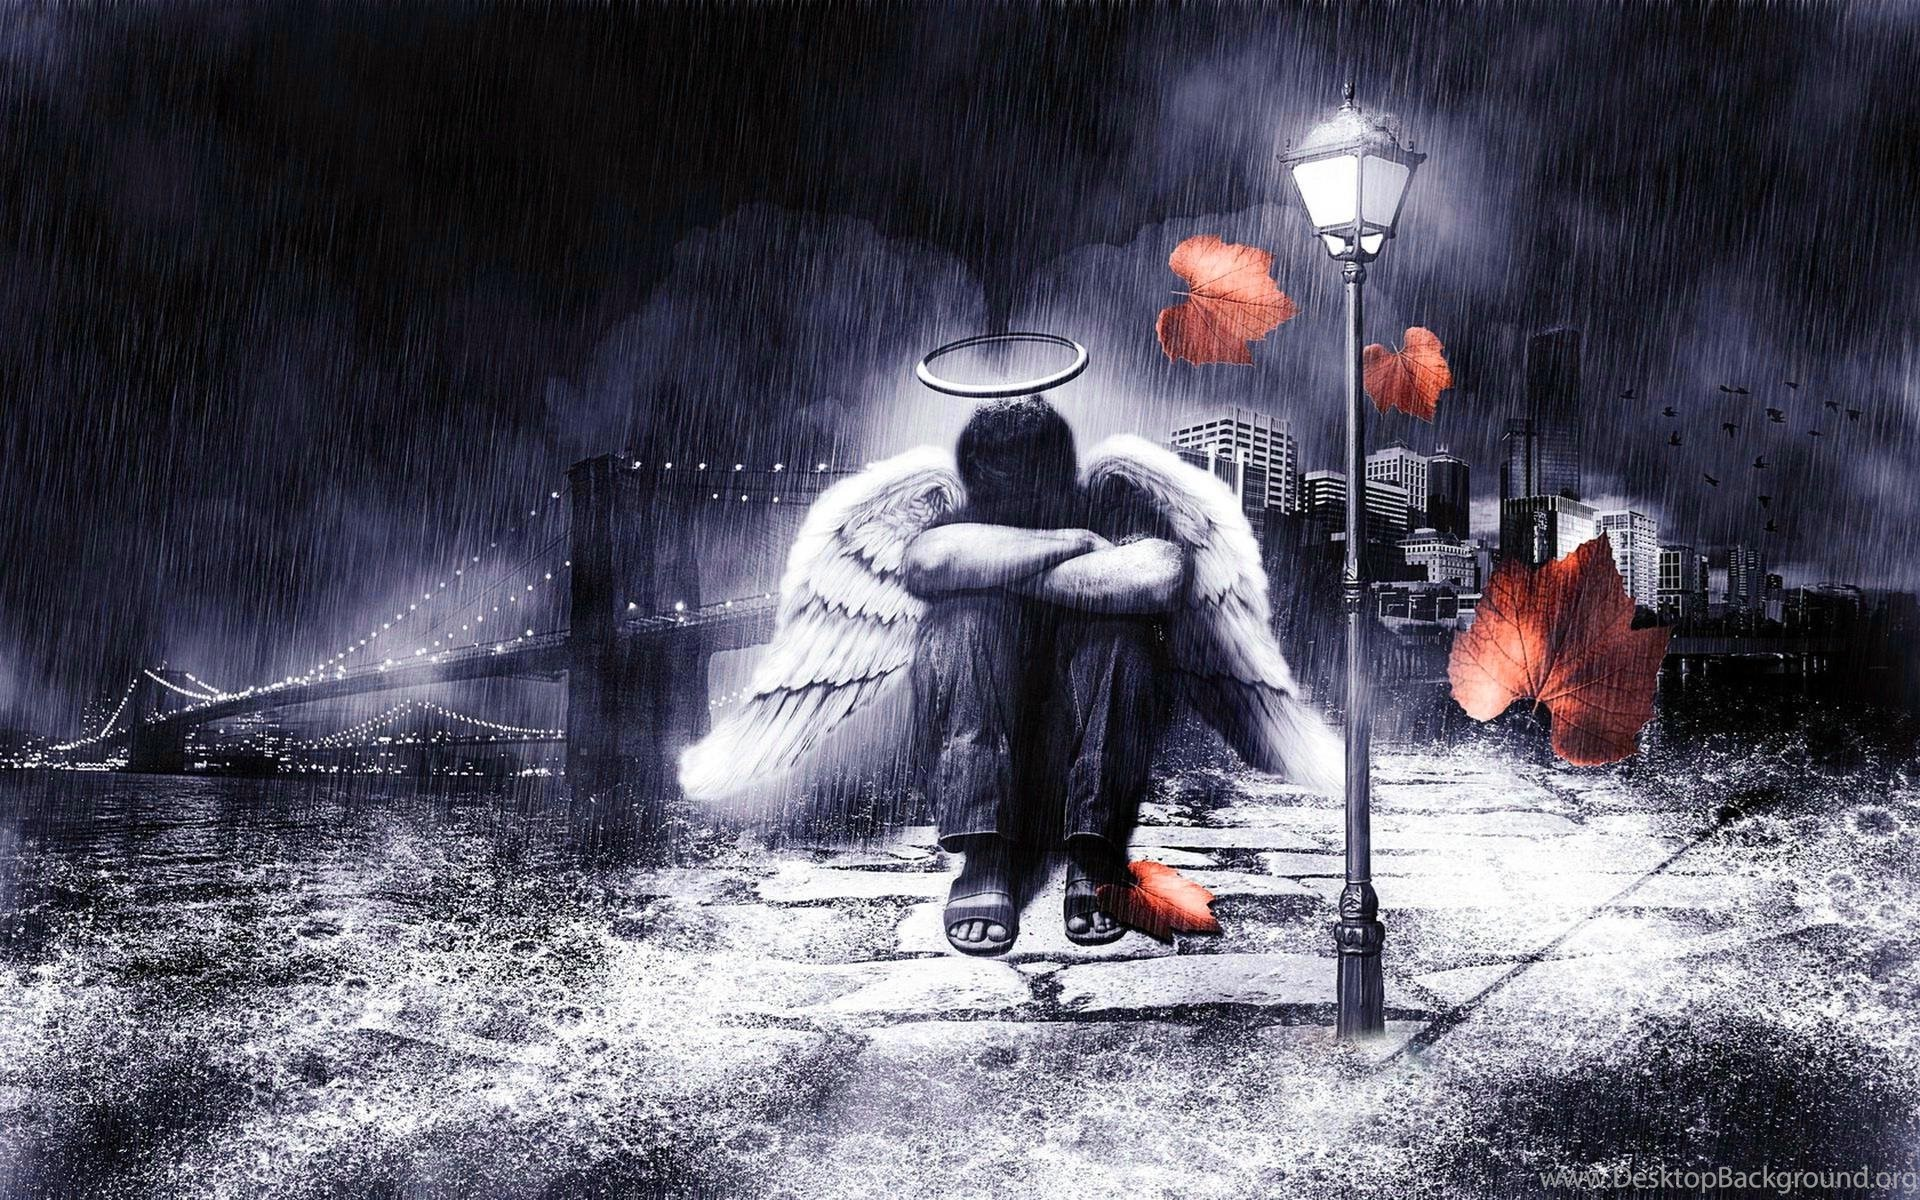 Sad rain hd backgrounds 7923 hd wallpapers site desktop - Sad man hd wallpaper ...